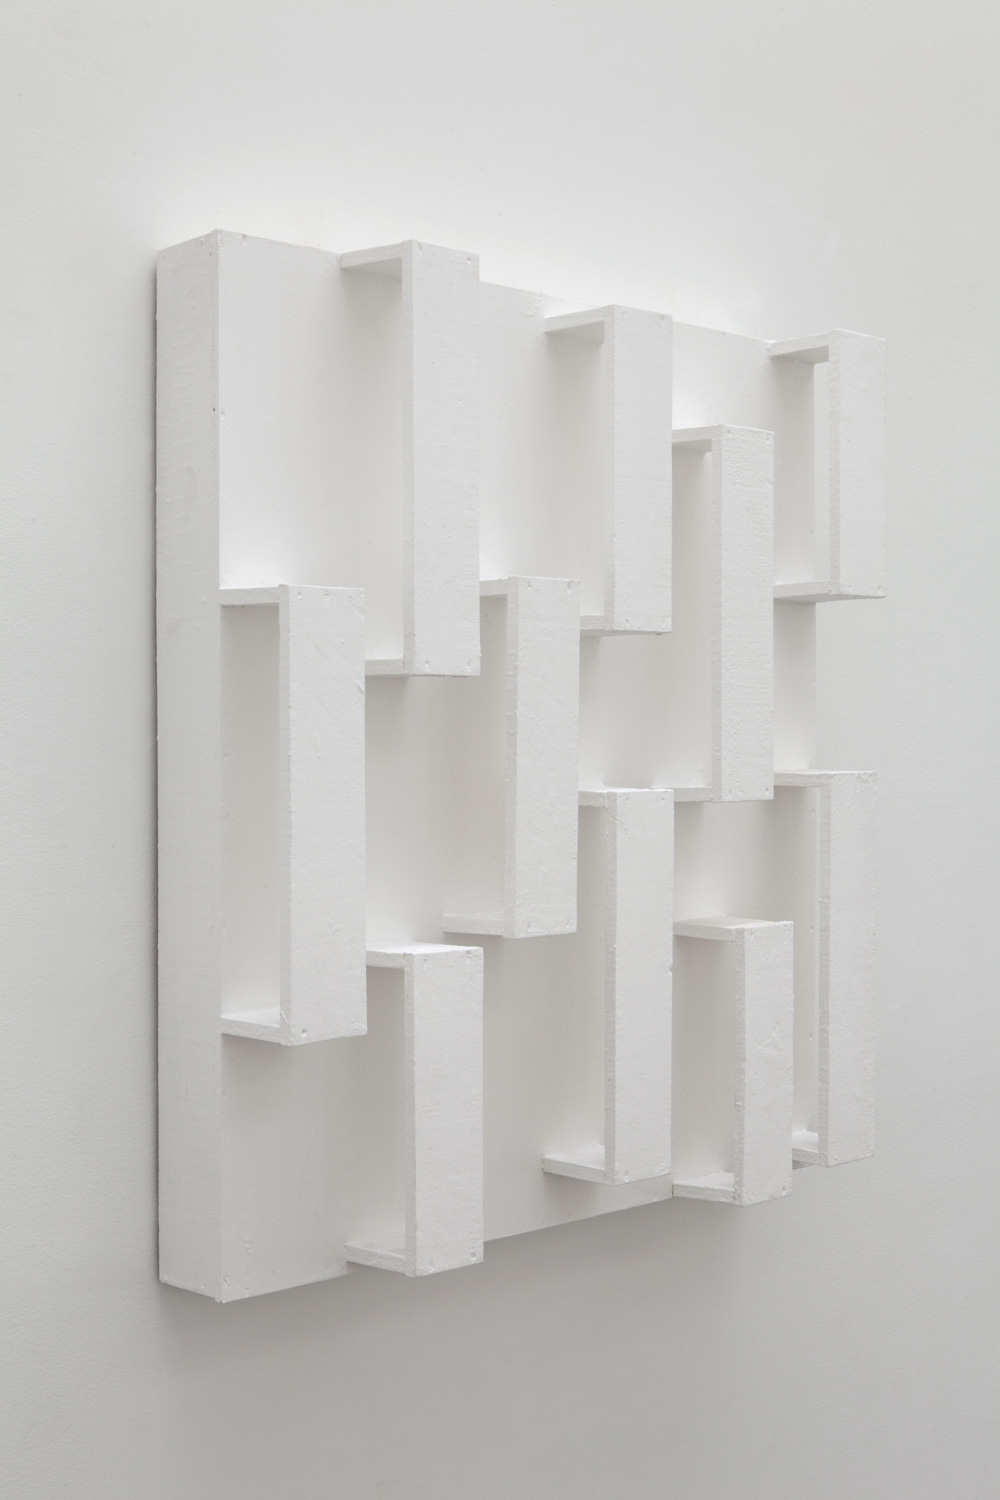 Boundaries and Space in Equivalent Transition , 1992 等過境空 ( Dōka Kyōkū ) Wood, paint 39 1/4 x 35 1/2 x 8 1/8 inches 99.7 x 90.2 x 20.6 cm